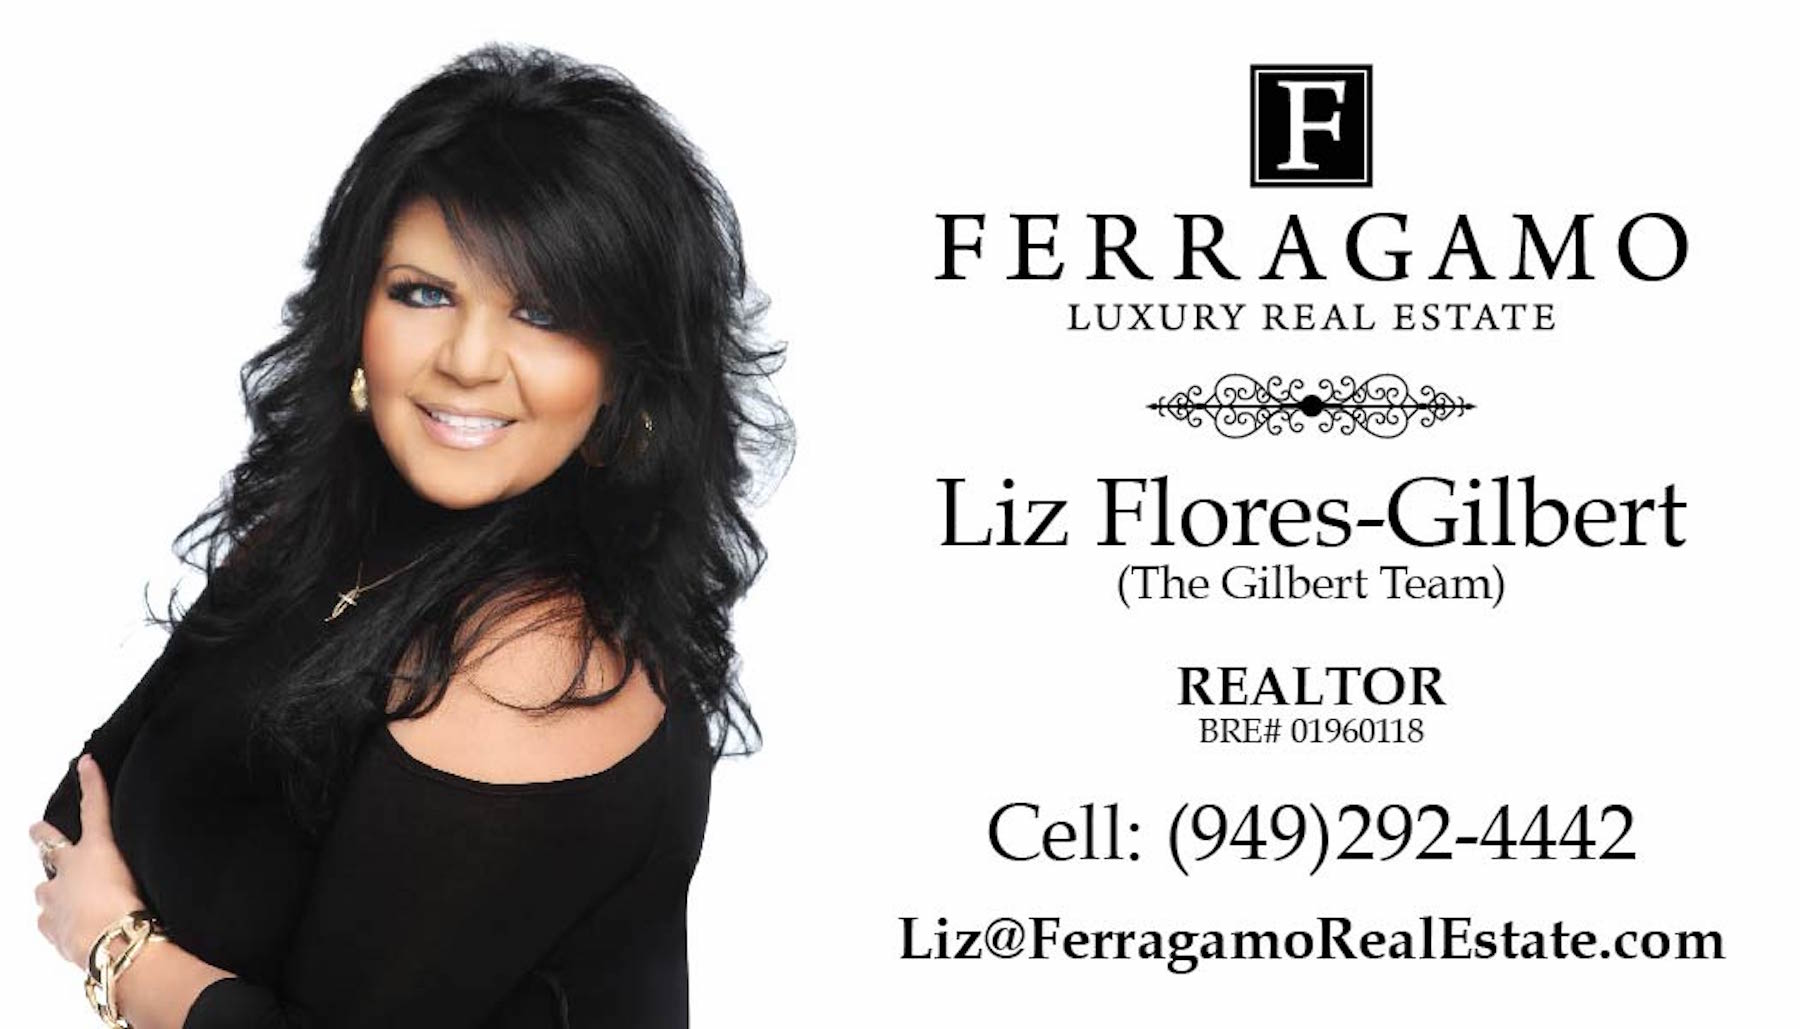 Contact Liz Flores-Gilbert for your  Real Estate  needs